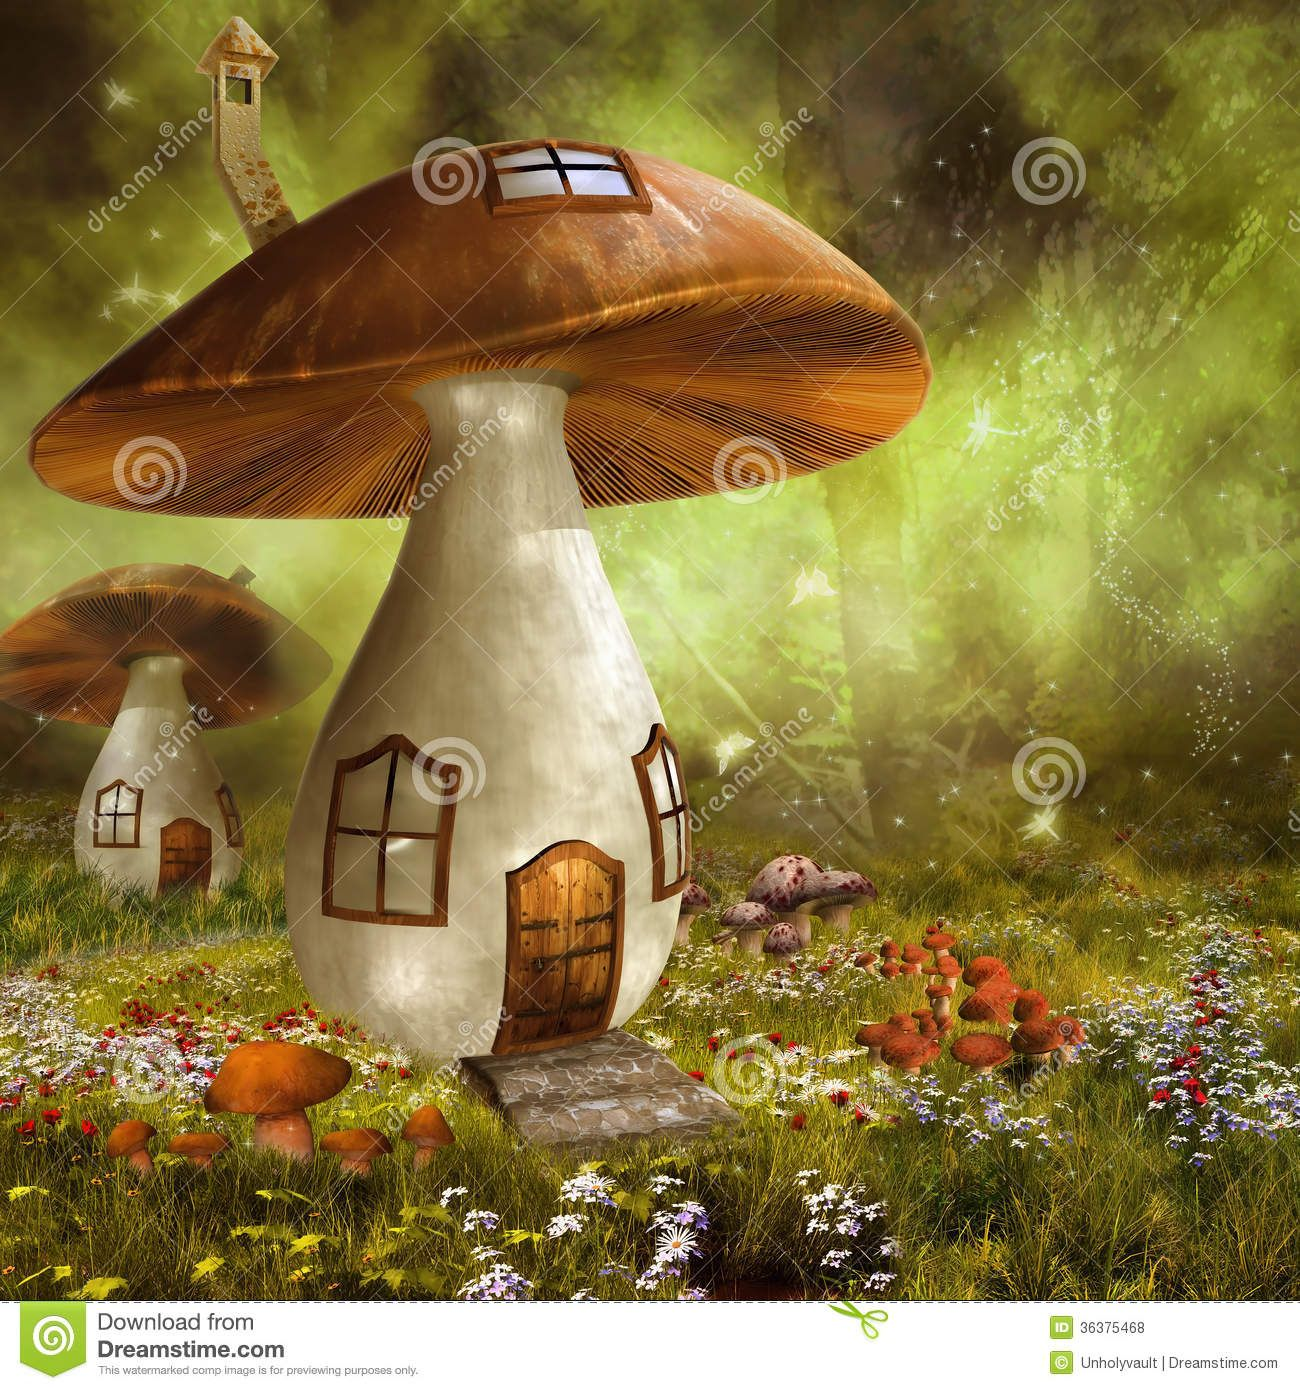 Fantasy art fairy houses go back images for colorful for Fairy on a mushroom drawing